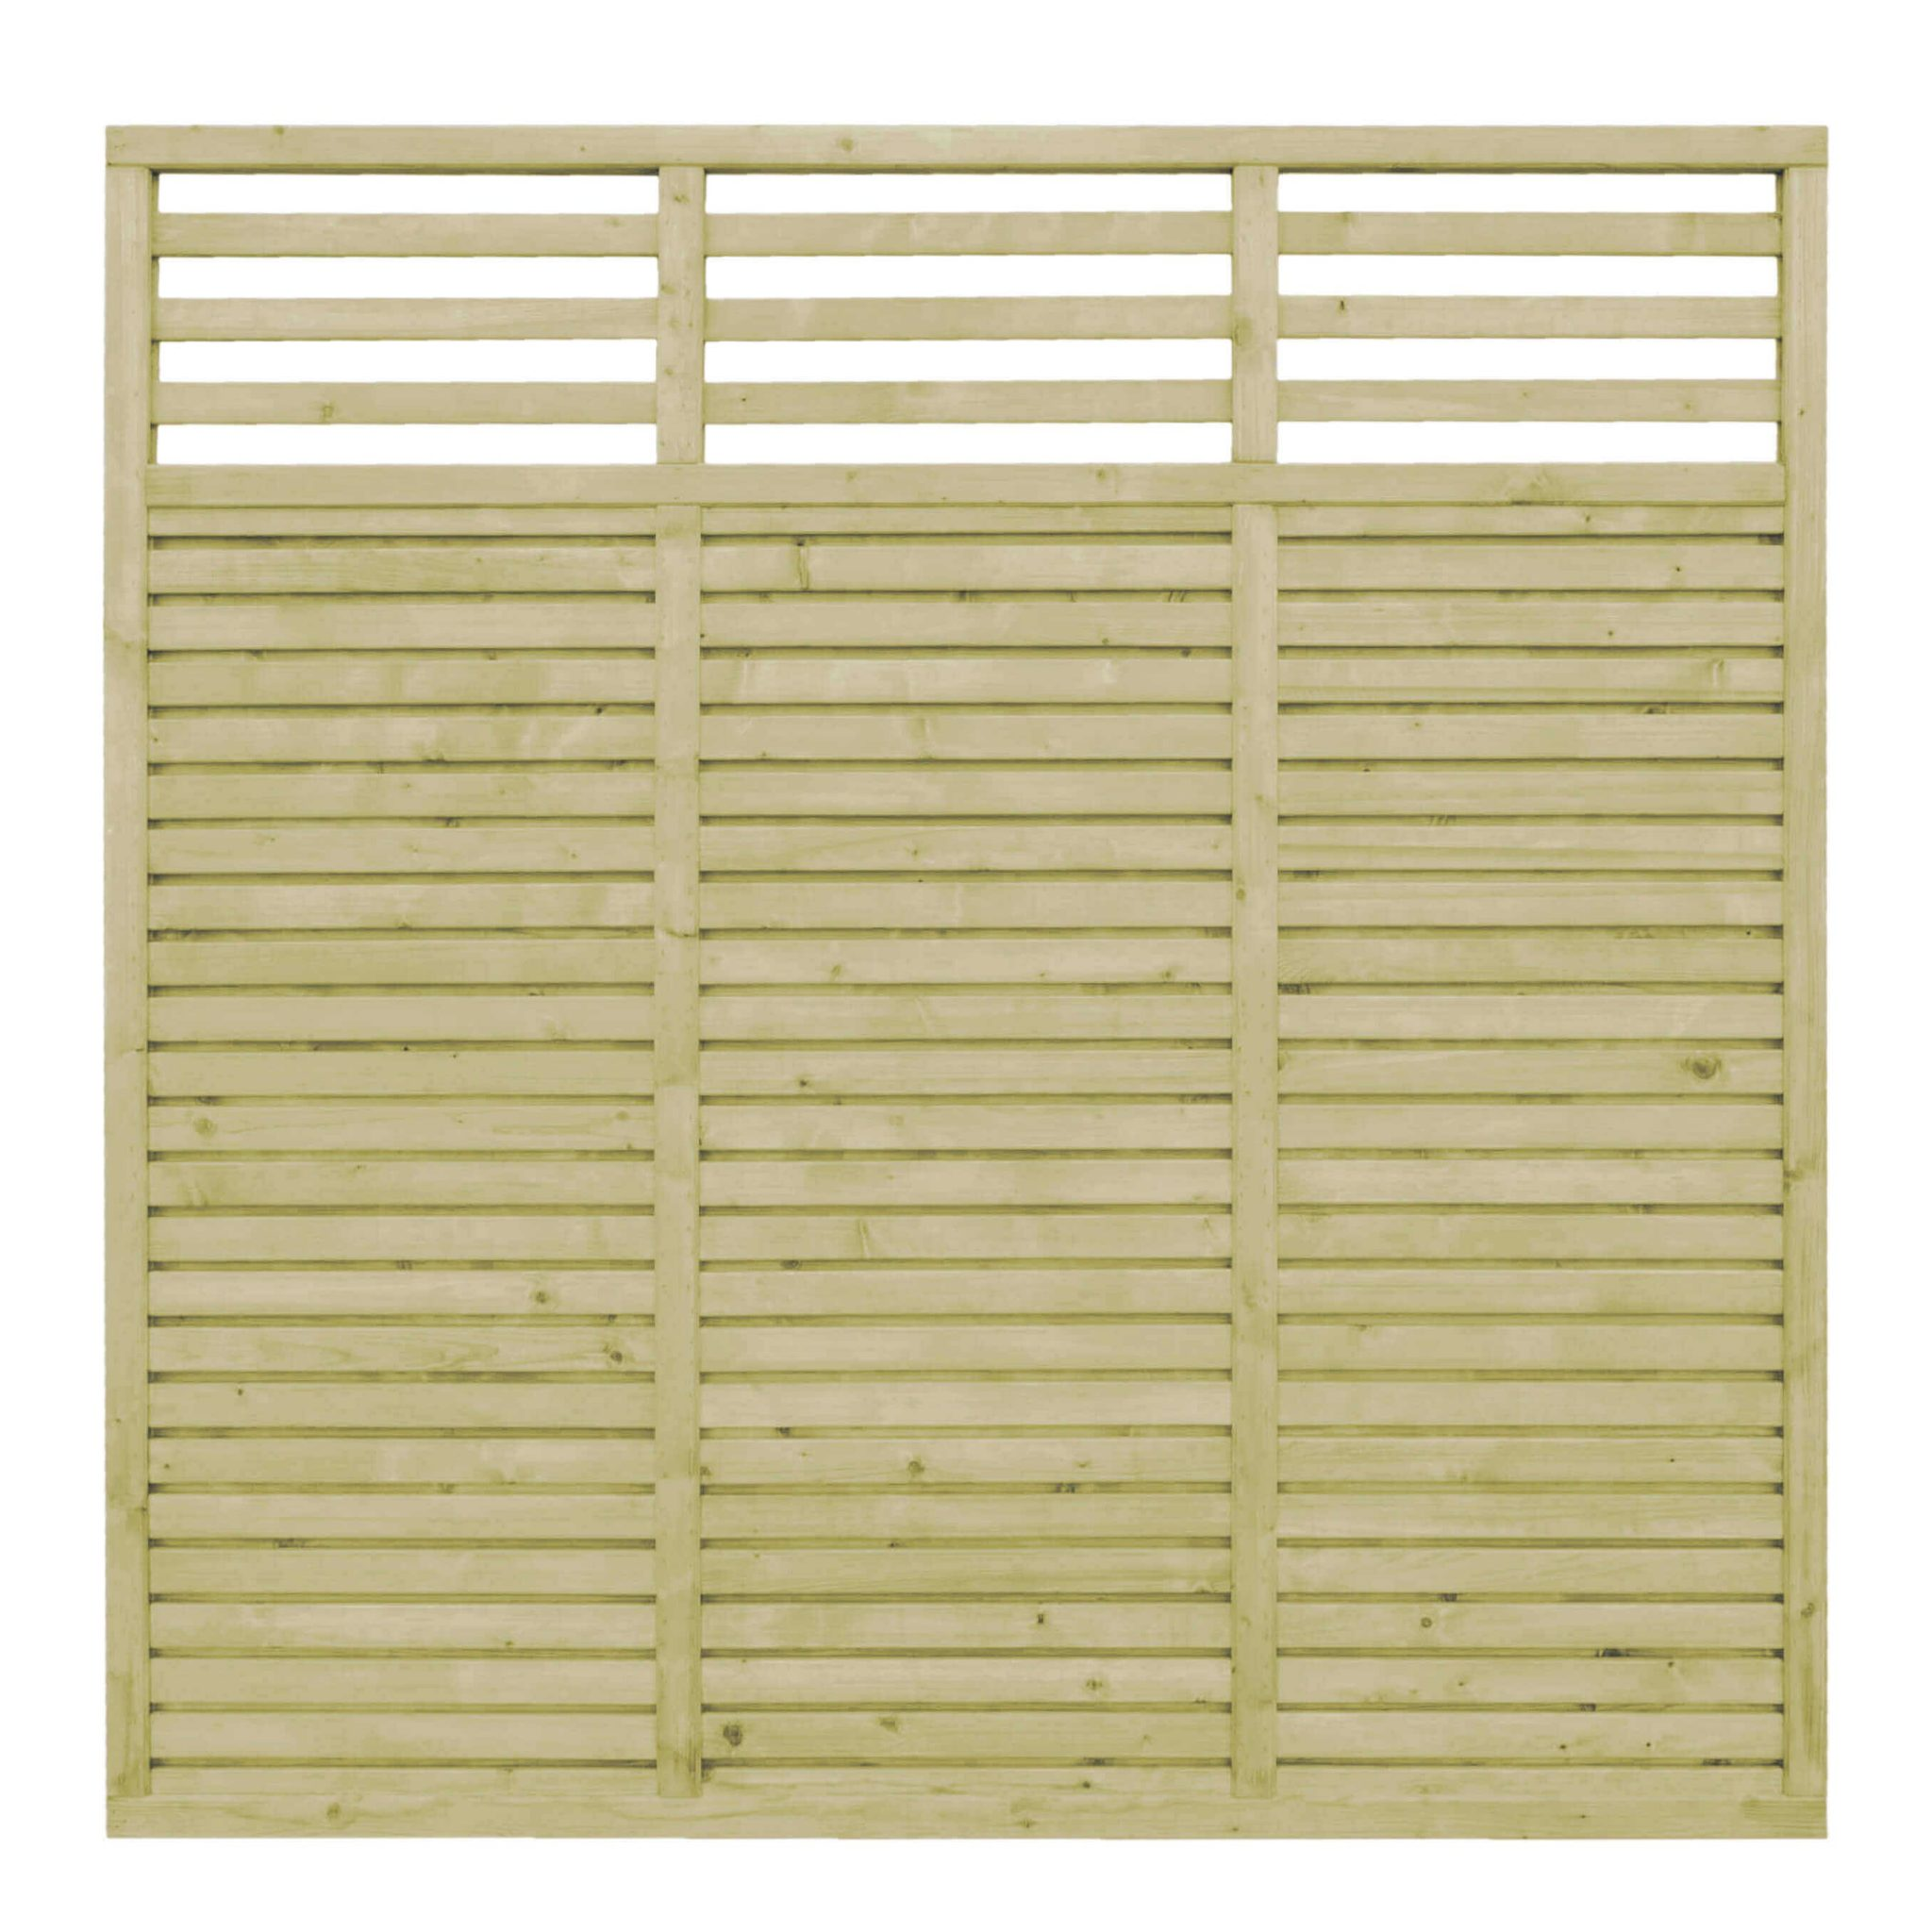 A heavyweight fence panel that combines the functionality and look of the Contemporary Vogue Panel with the added feature of a horizontal style trellis top to create a modern twist on an already popular panel.